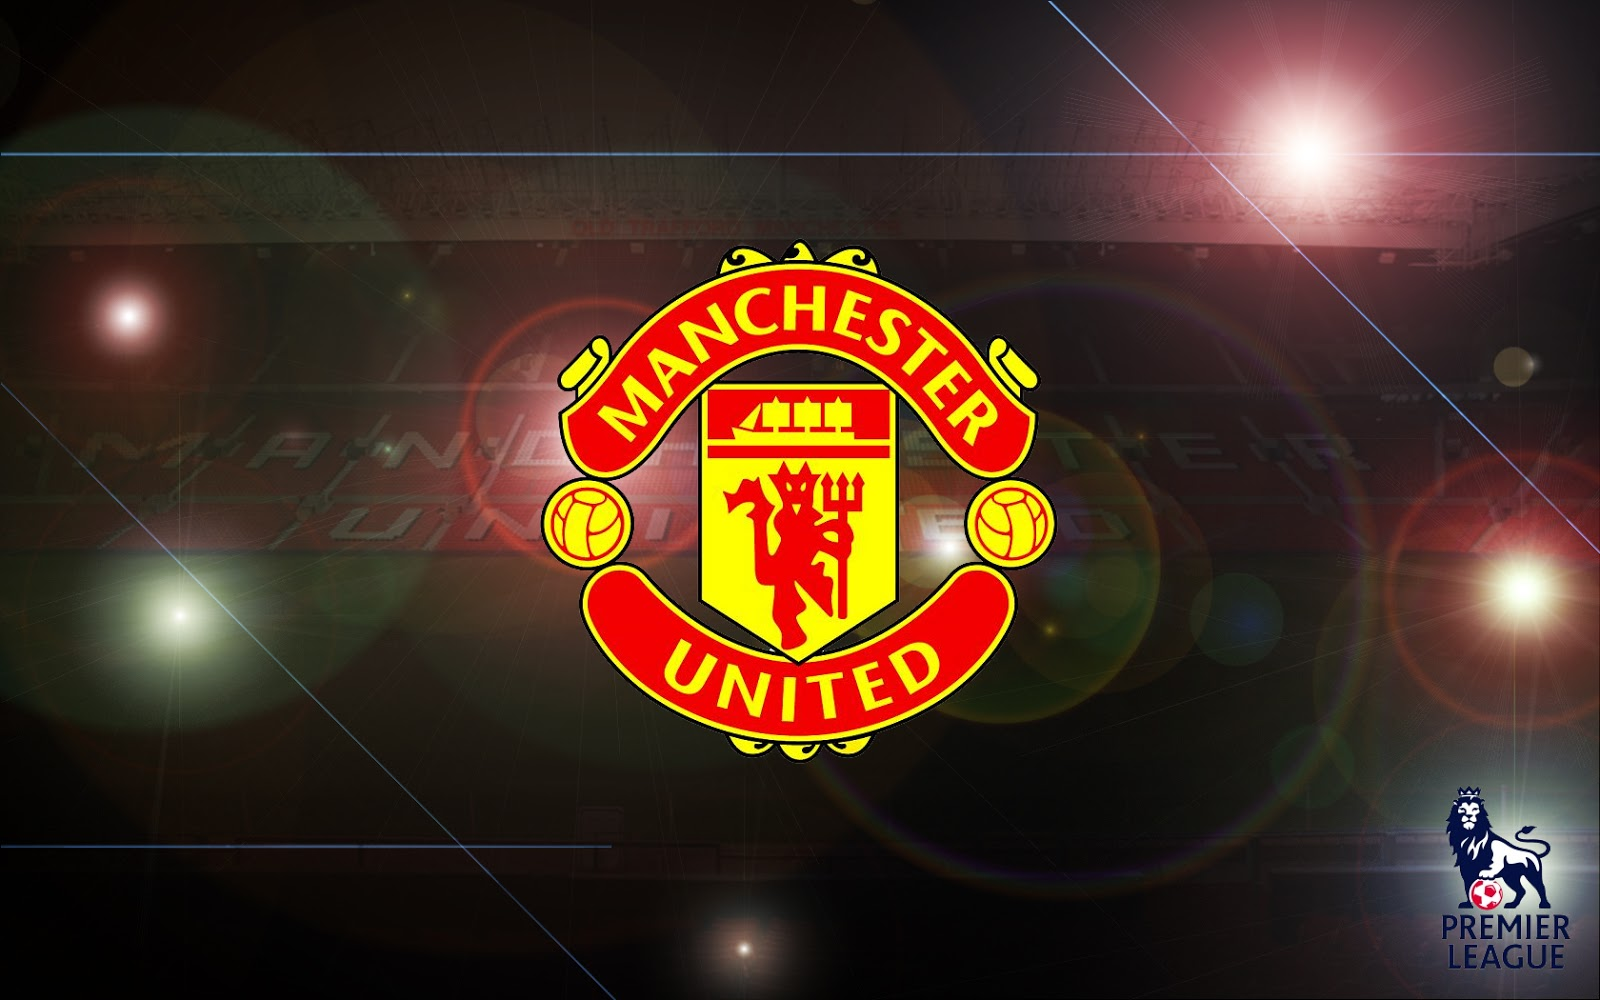 Manchester United Logo Wallpapers HD Collection 1600x1000